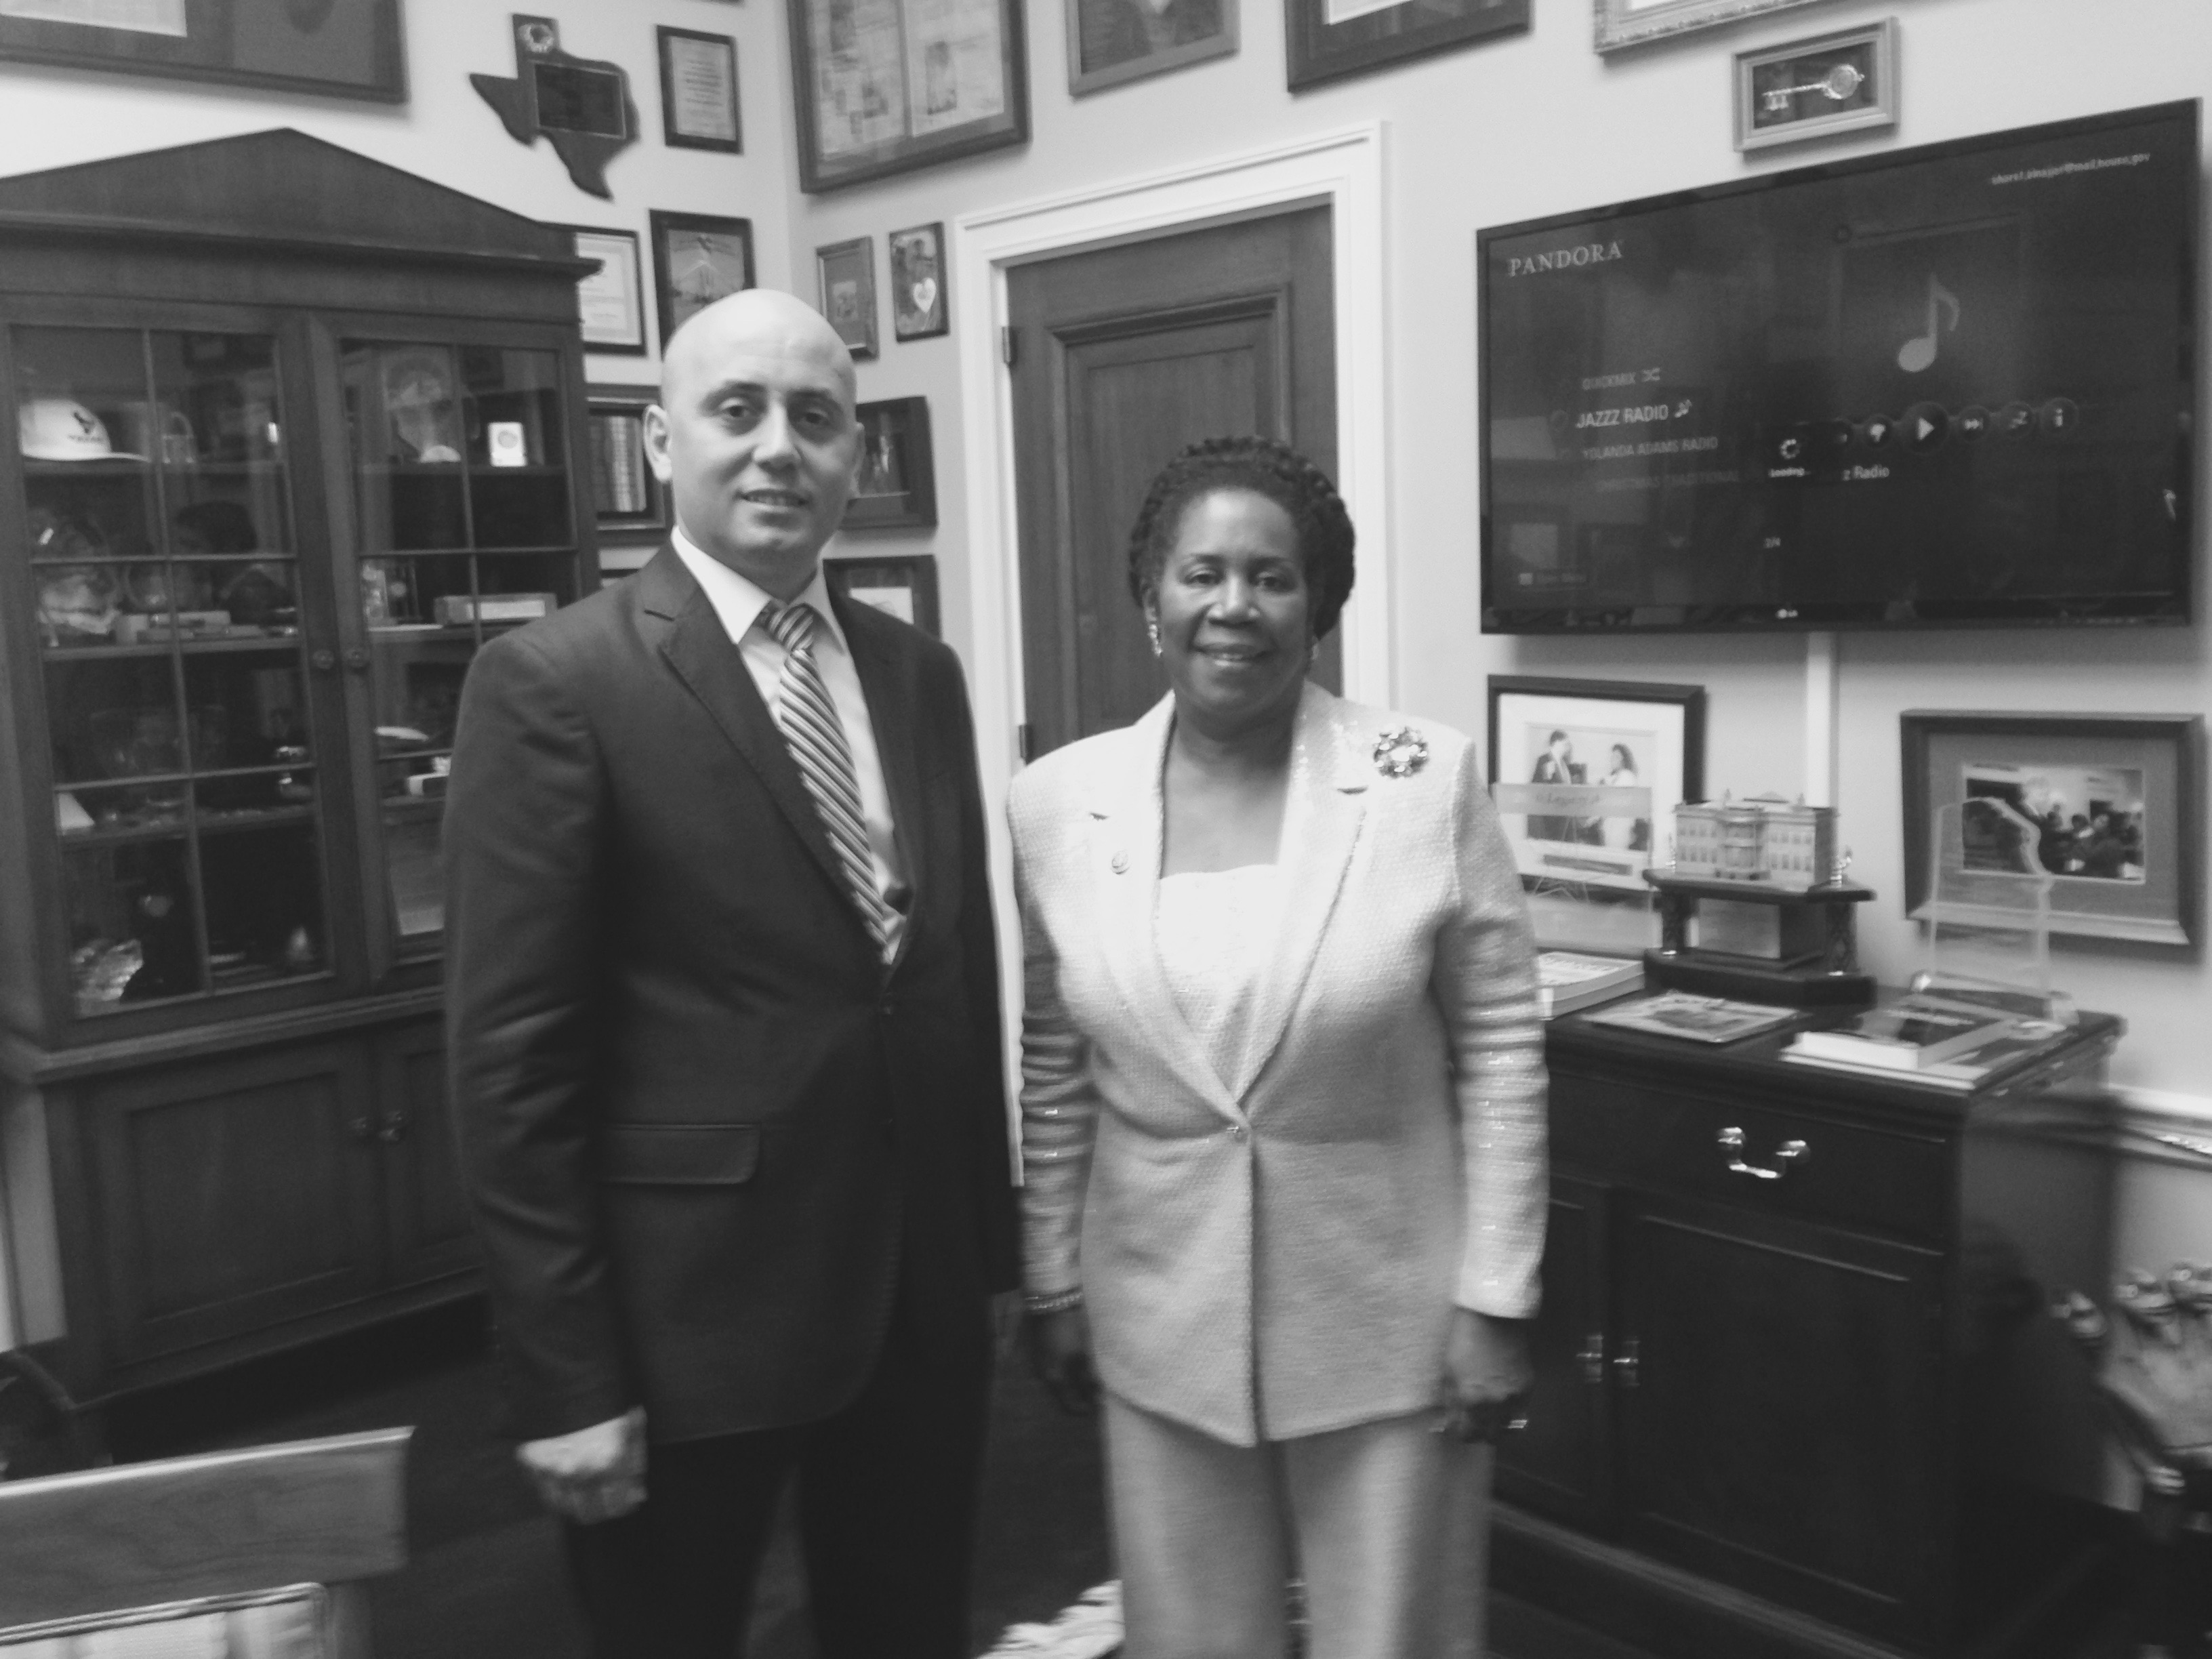 Bilal Eksili with Congresswoman Sheila Jackson Lee